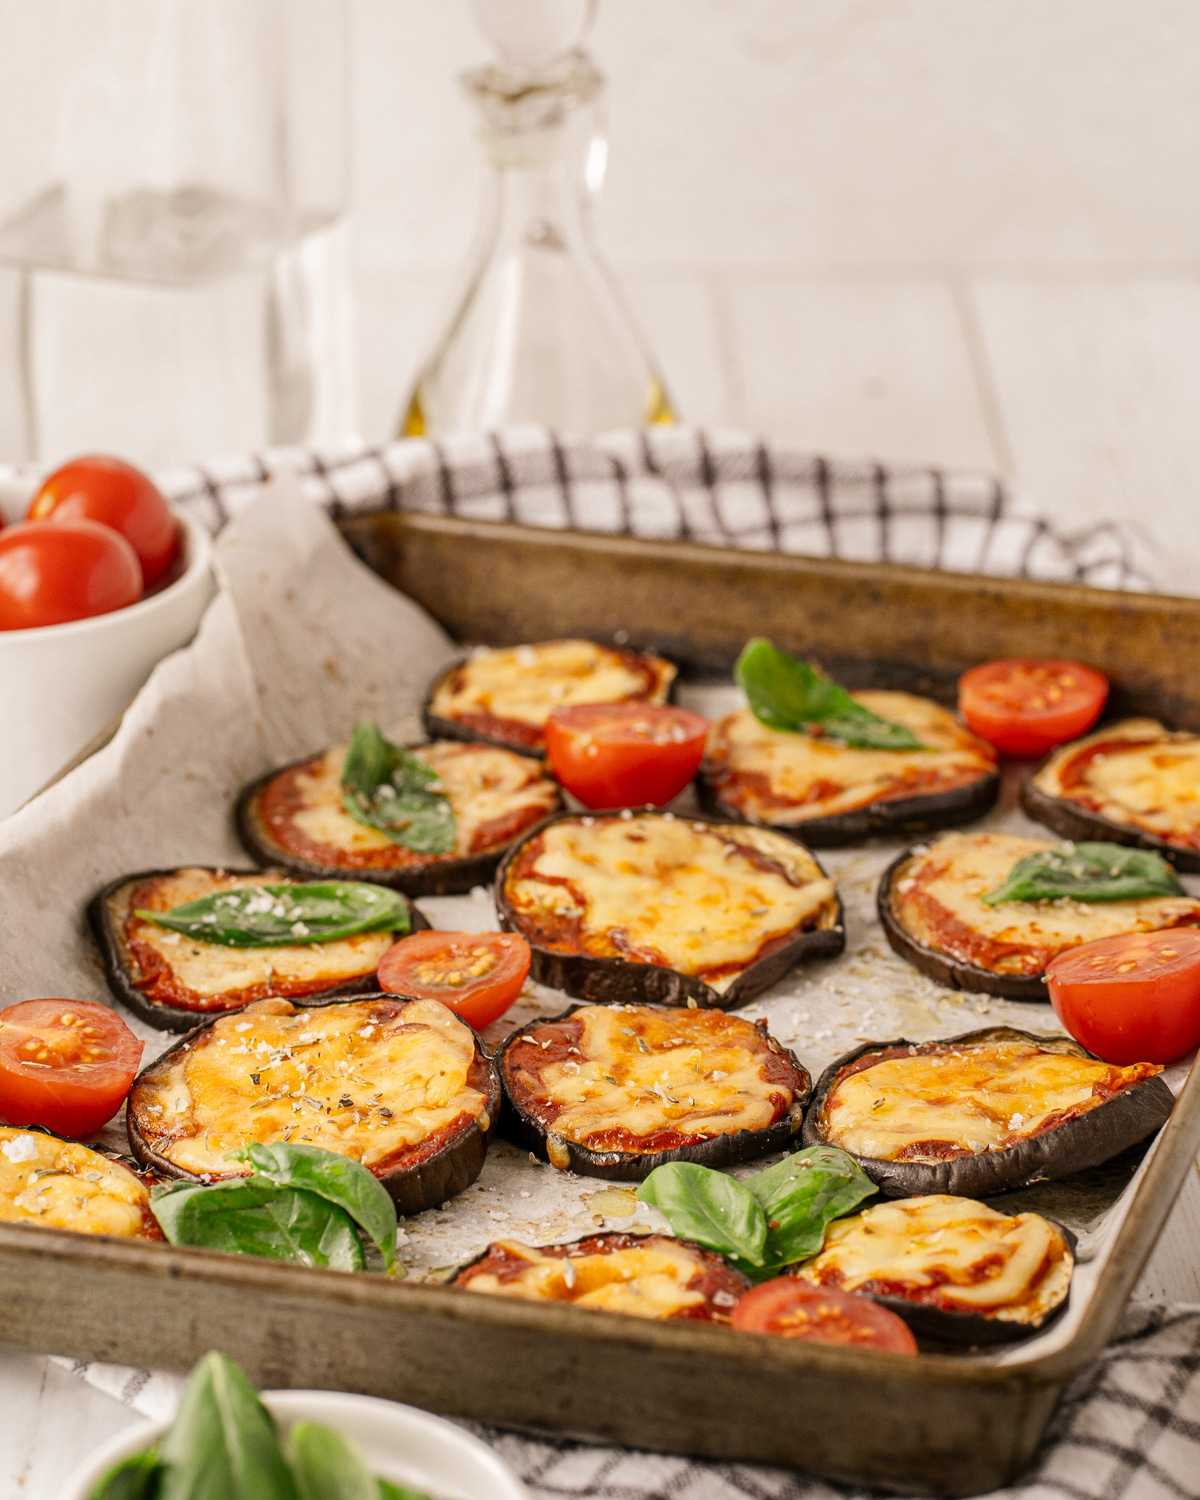 A simple, healthy and delicious way to eat Eggplant Parmesan. Low carb, gluten free and perfect for a busy weeknight!